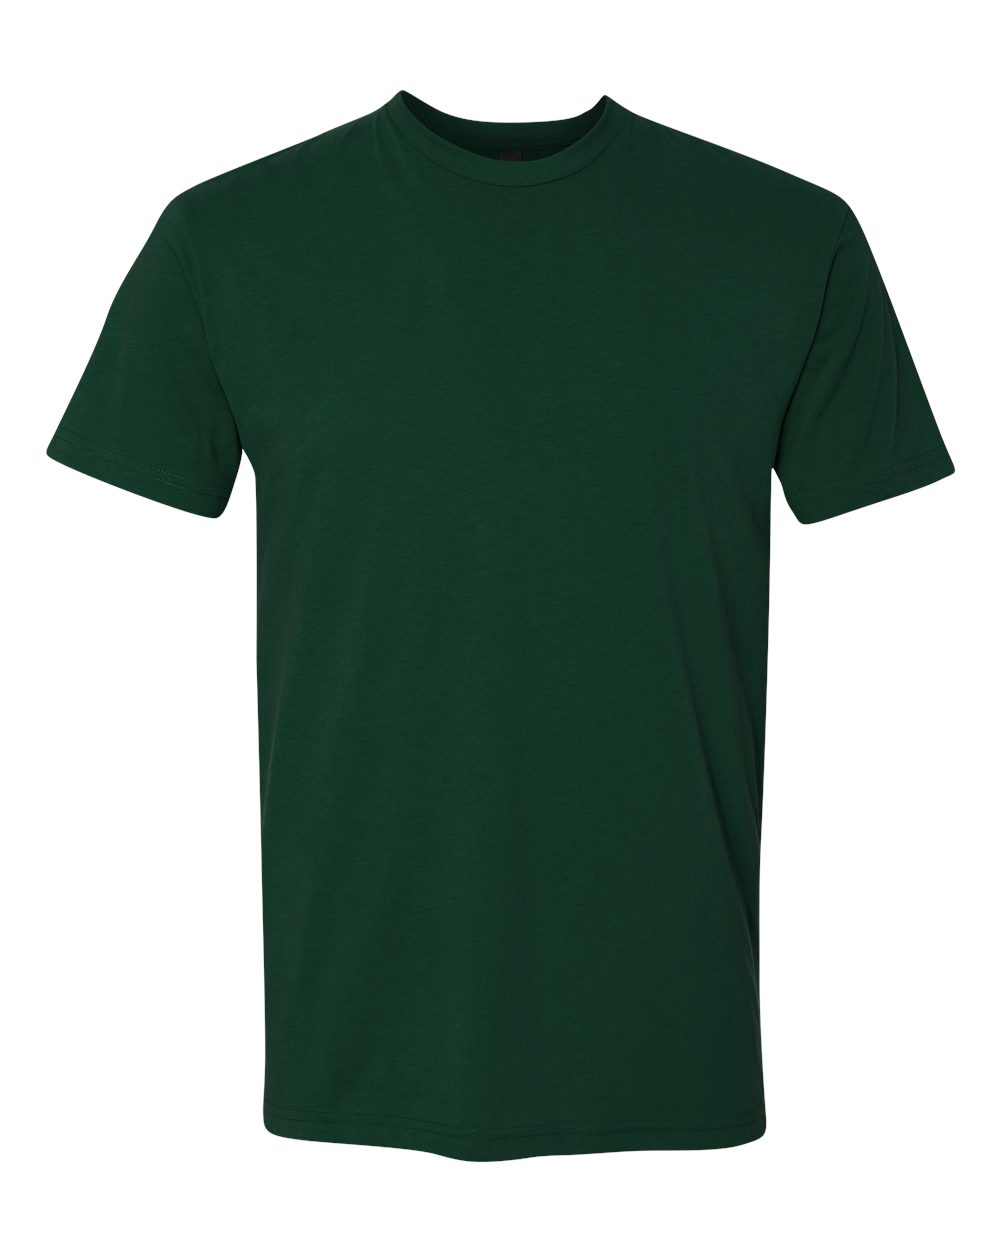 Next_Level_3600_Forest_Green_Front_High.jpg